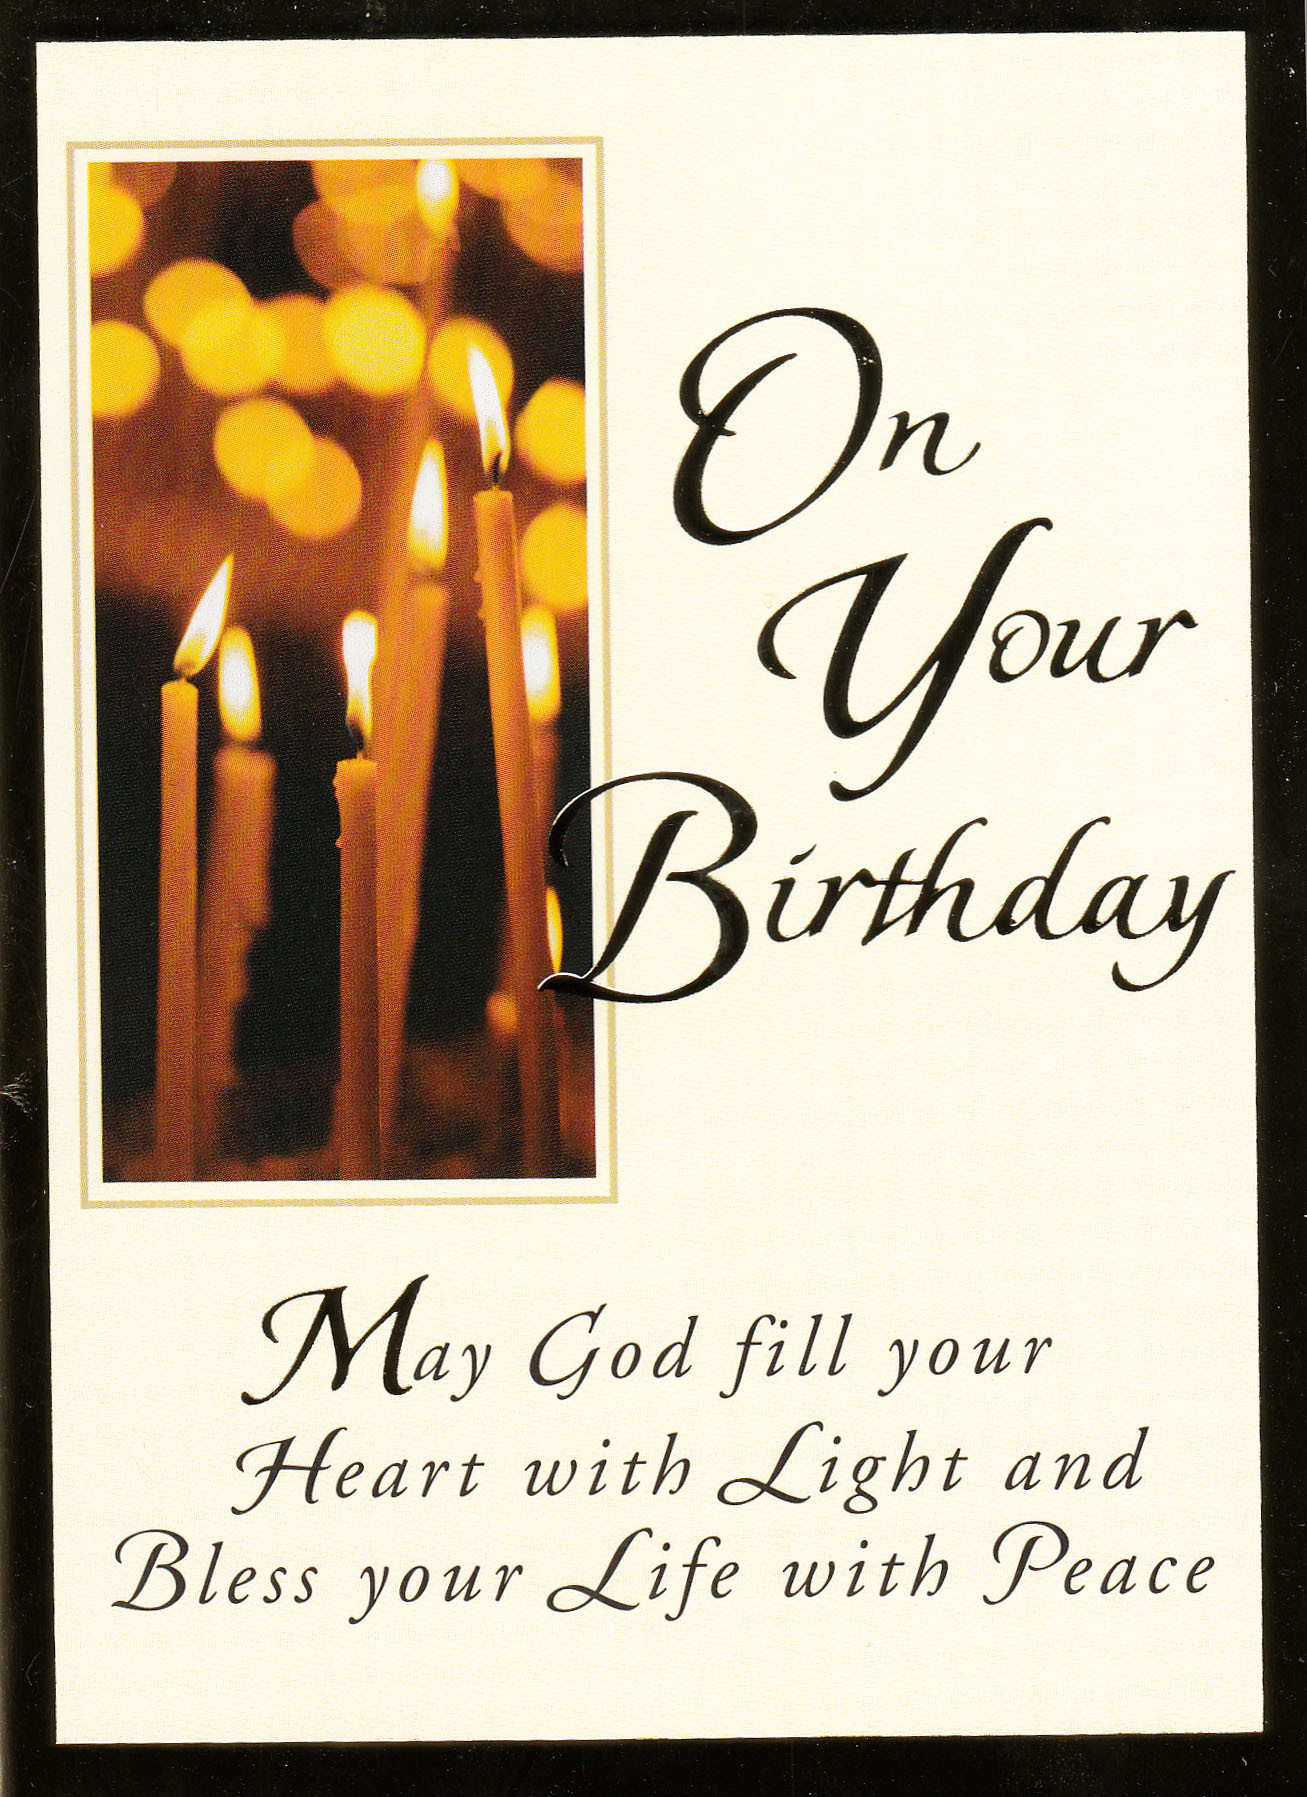 Birthday Quotes For Loved Ones  Birthday Quotes Deceased Love e QuotesGram